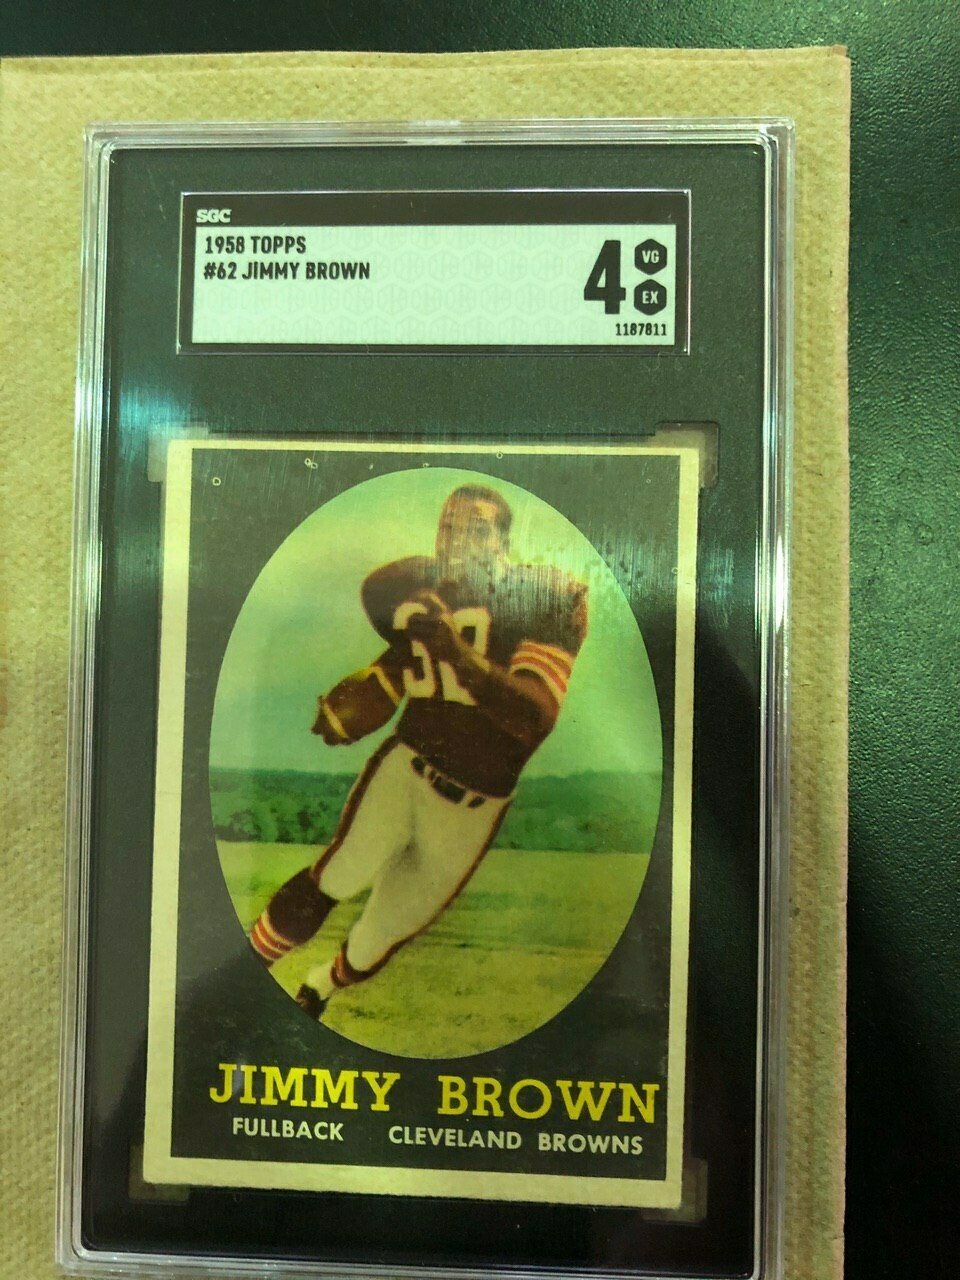 1958 Topps #62 Jim Brown rookie SGC graded 4, $595